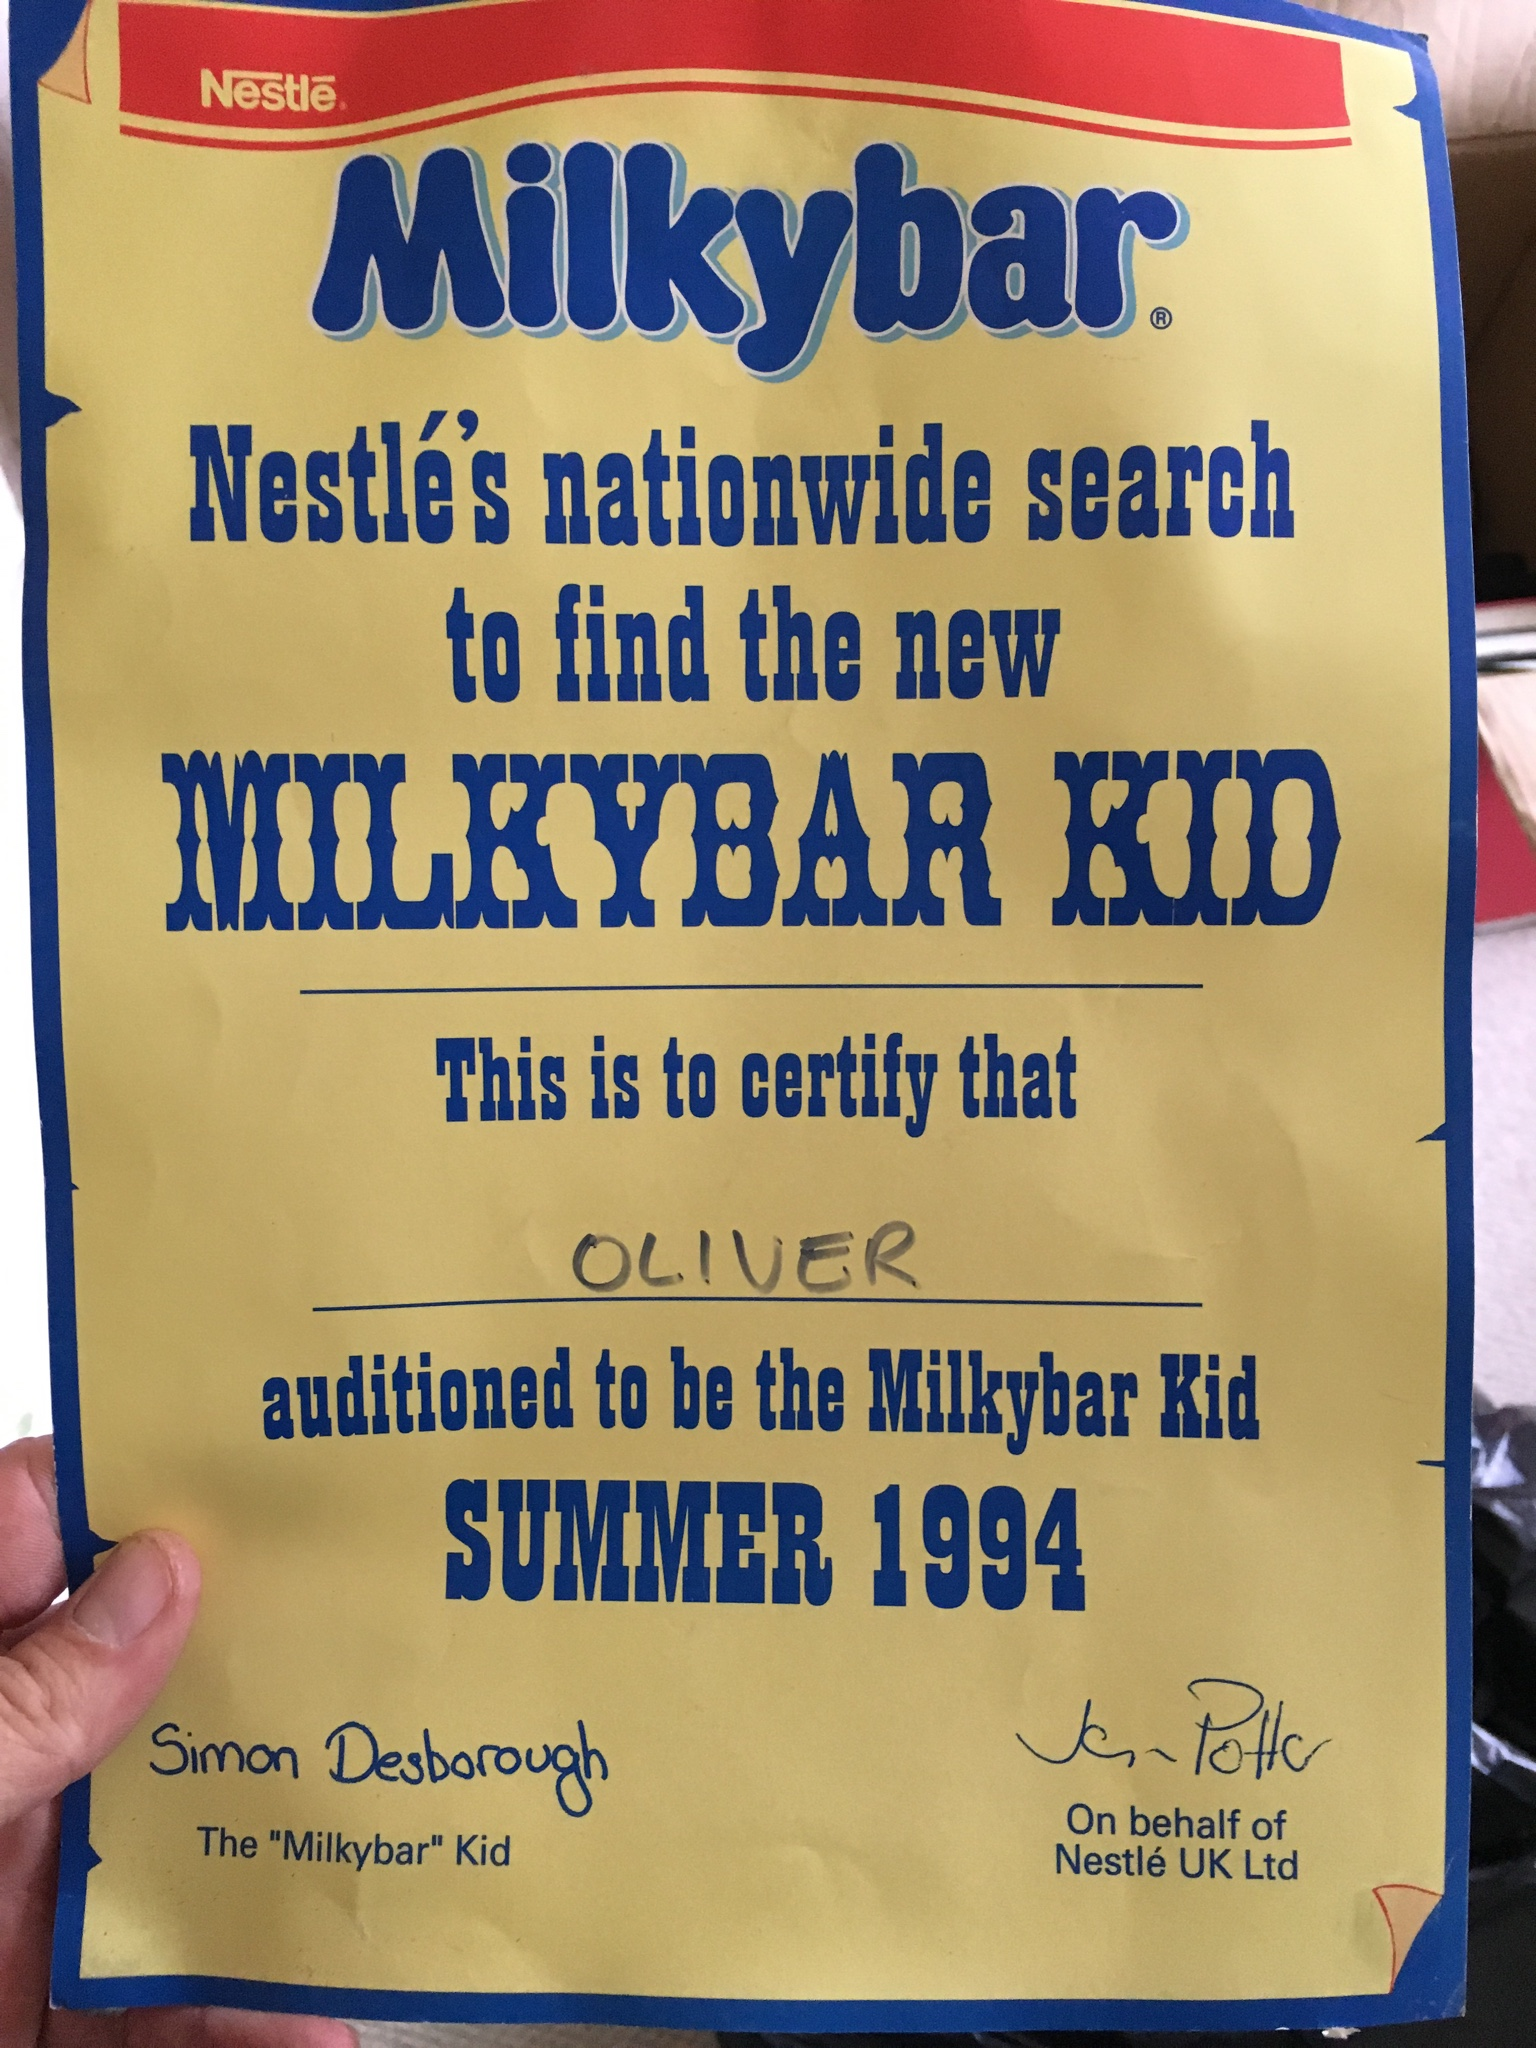 Ollie Peart's audition certificate to be the Milkybar Kid